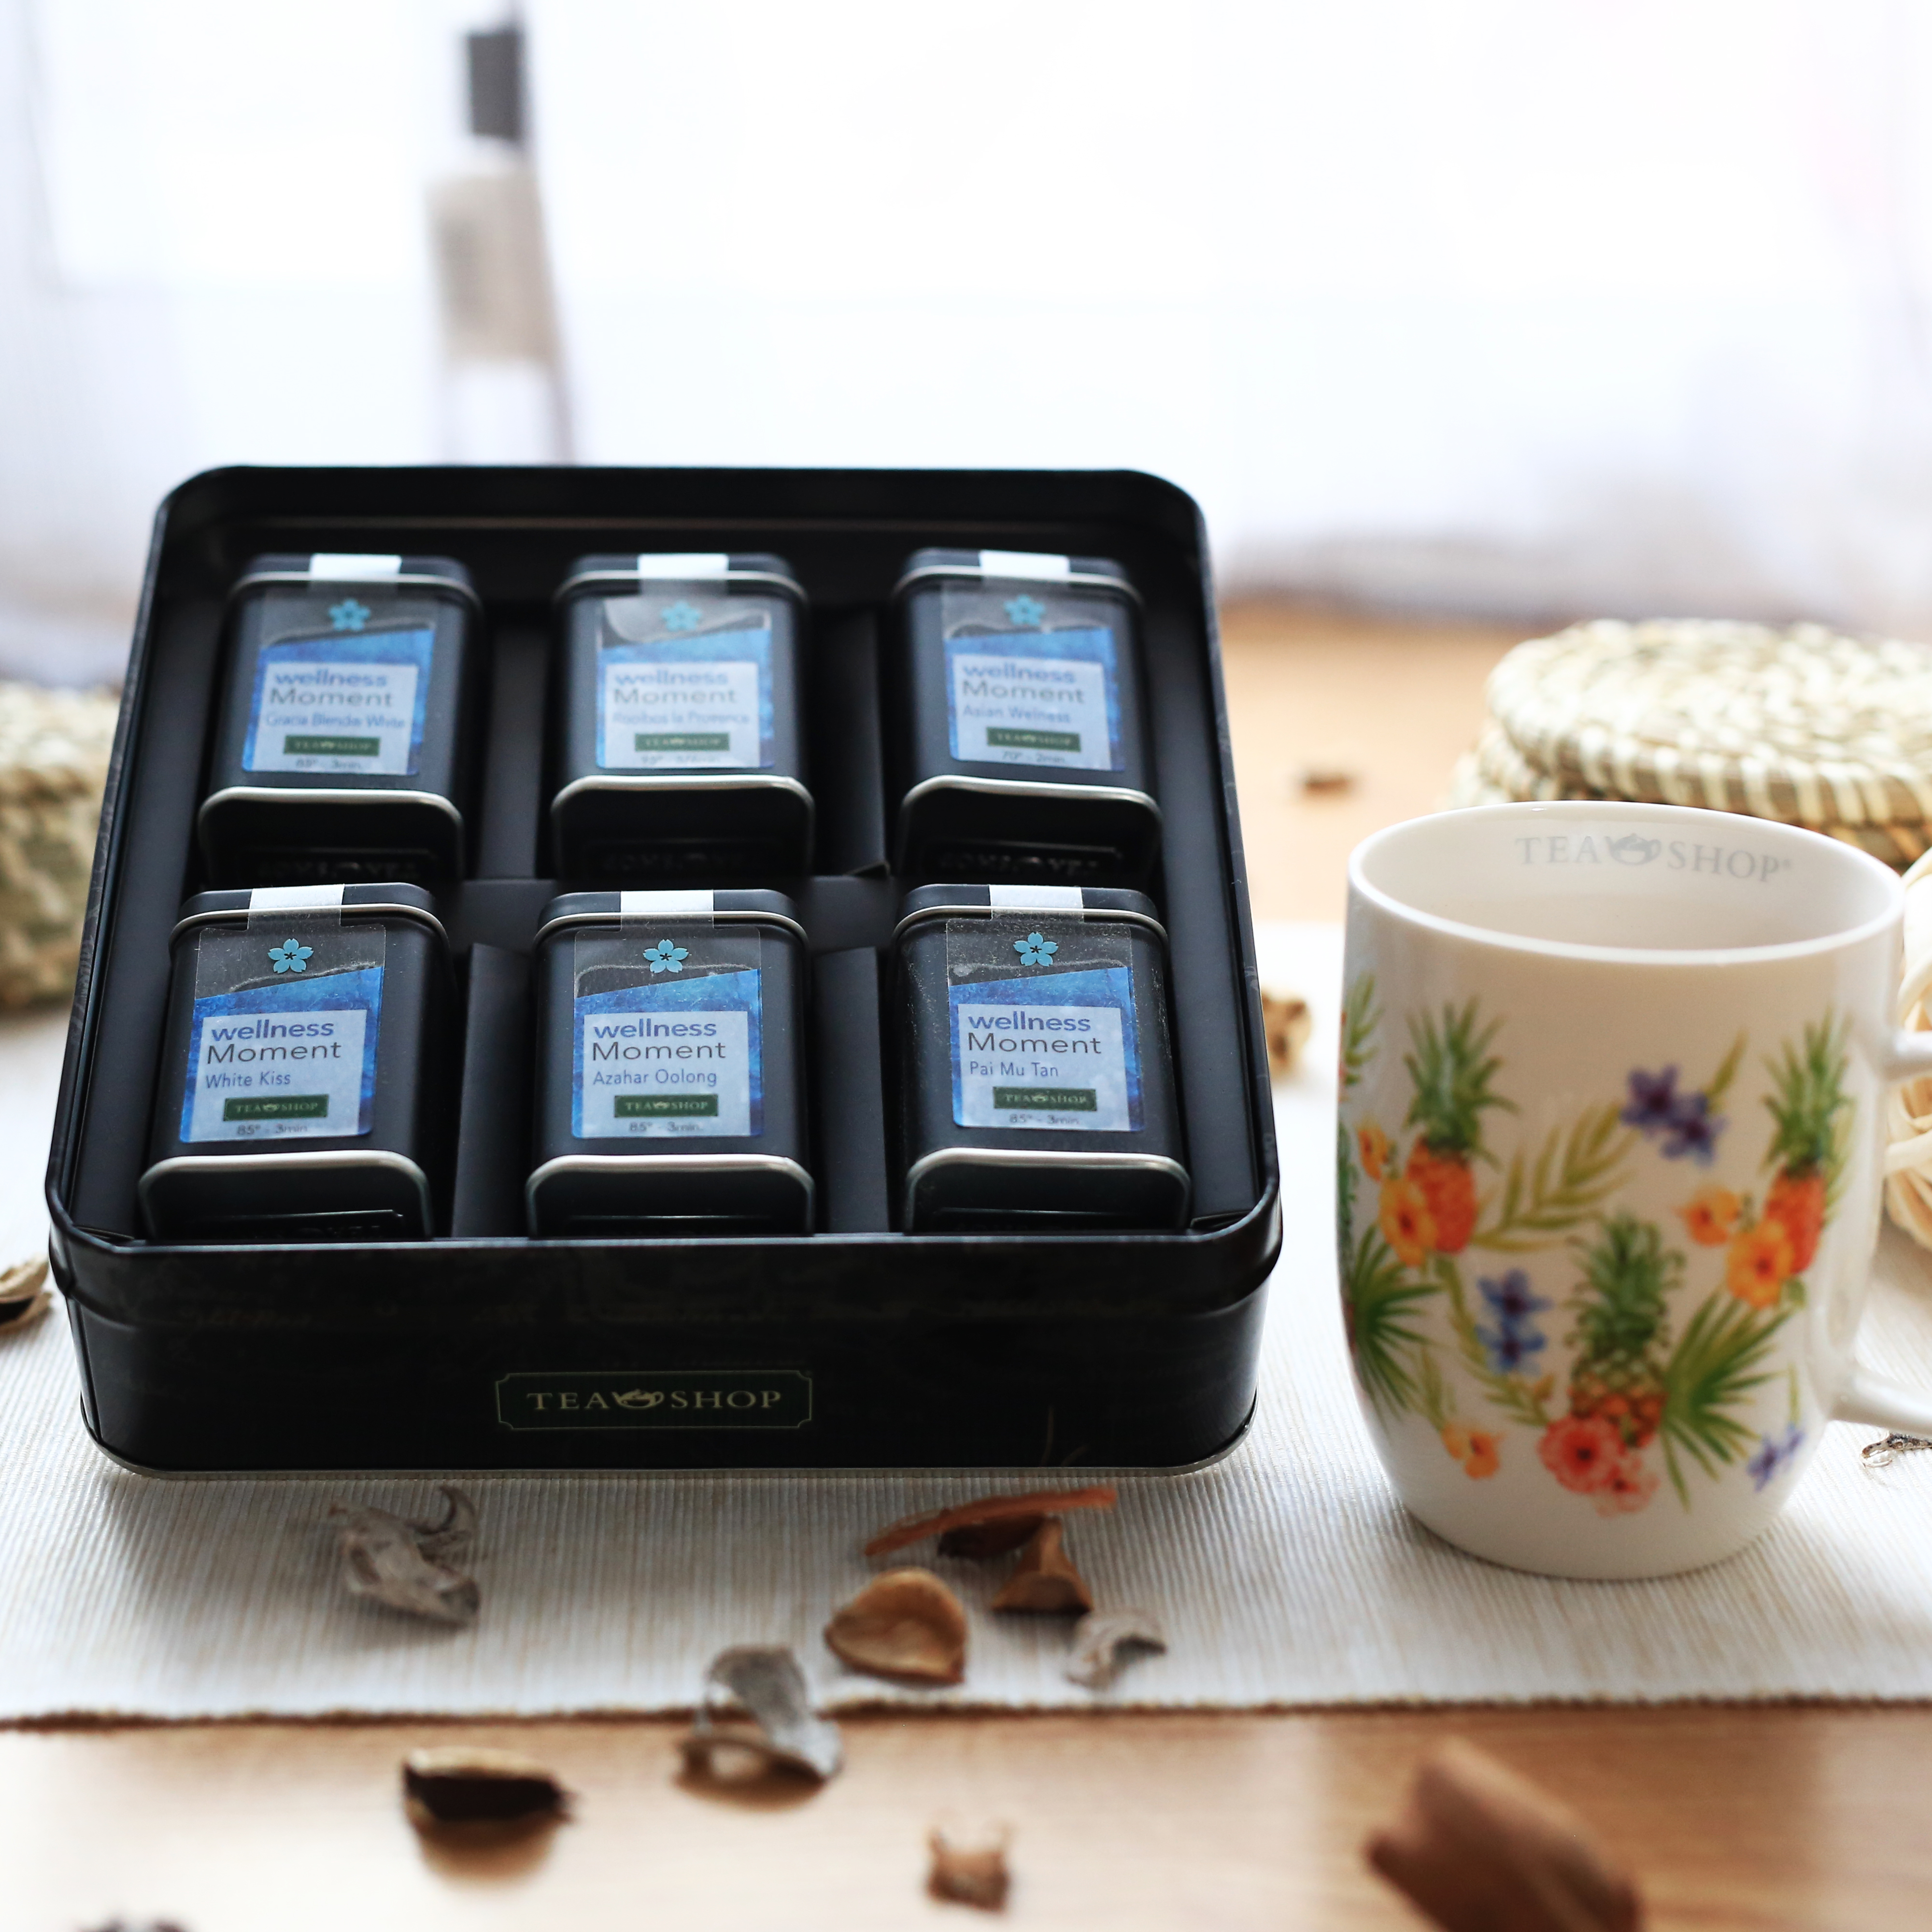 Tea Moments Wellness. Tea Collections, Essentials Tea Shop® - Item3